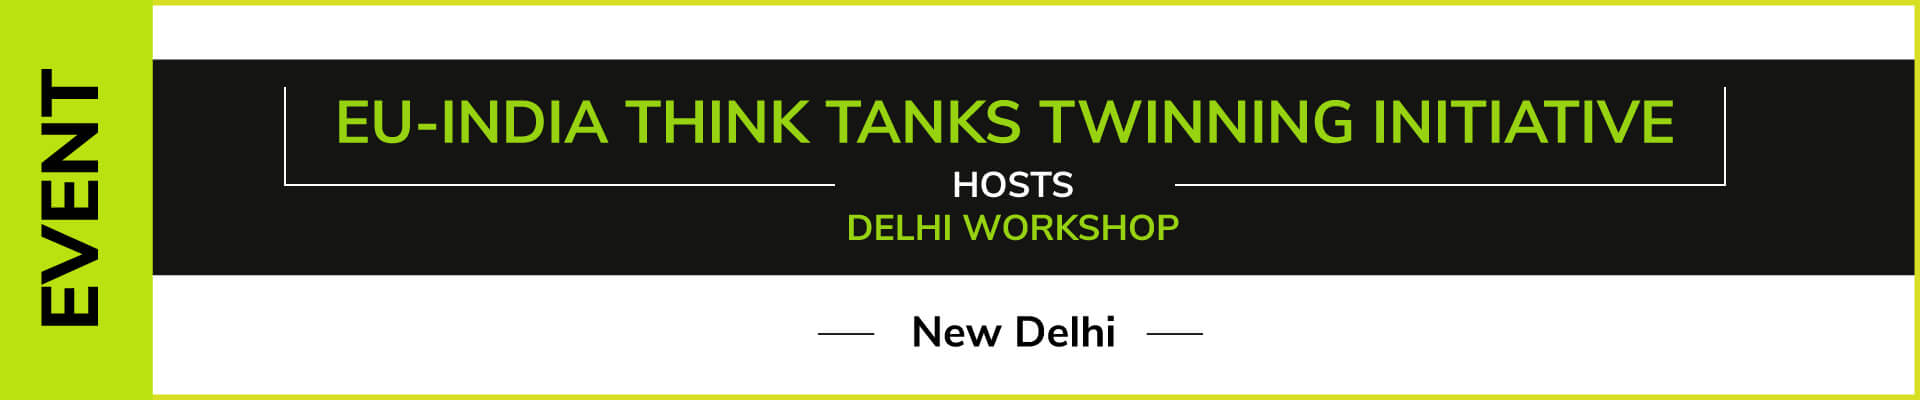 Event – EU India TTTI hosts Delhi workshop